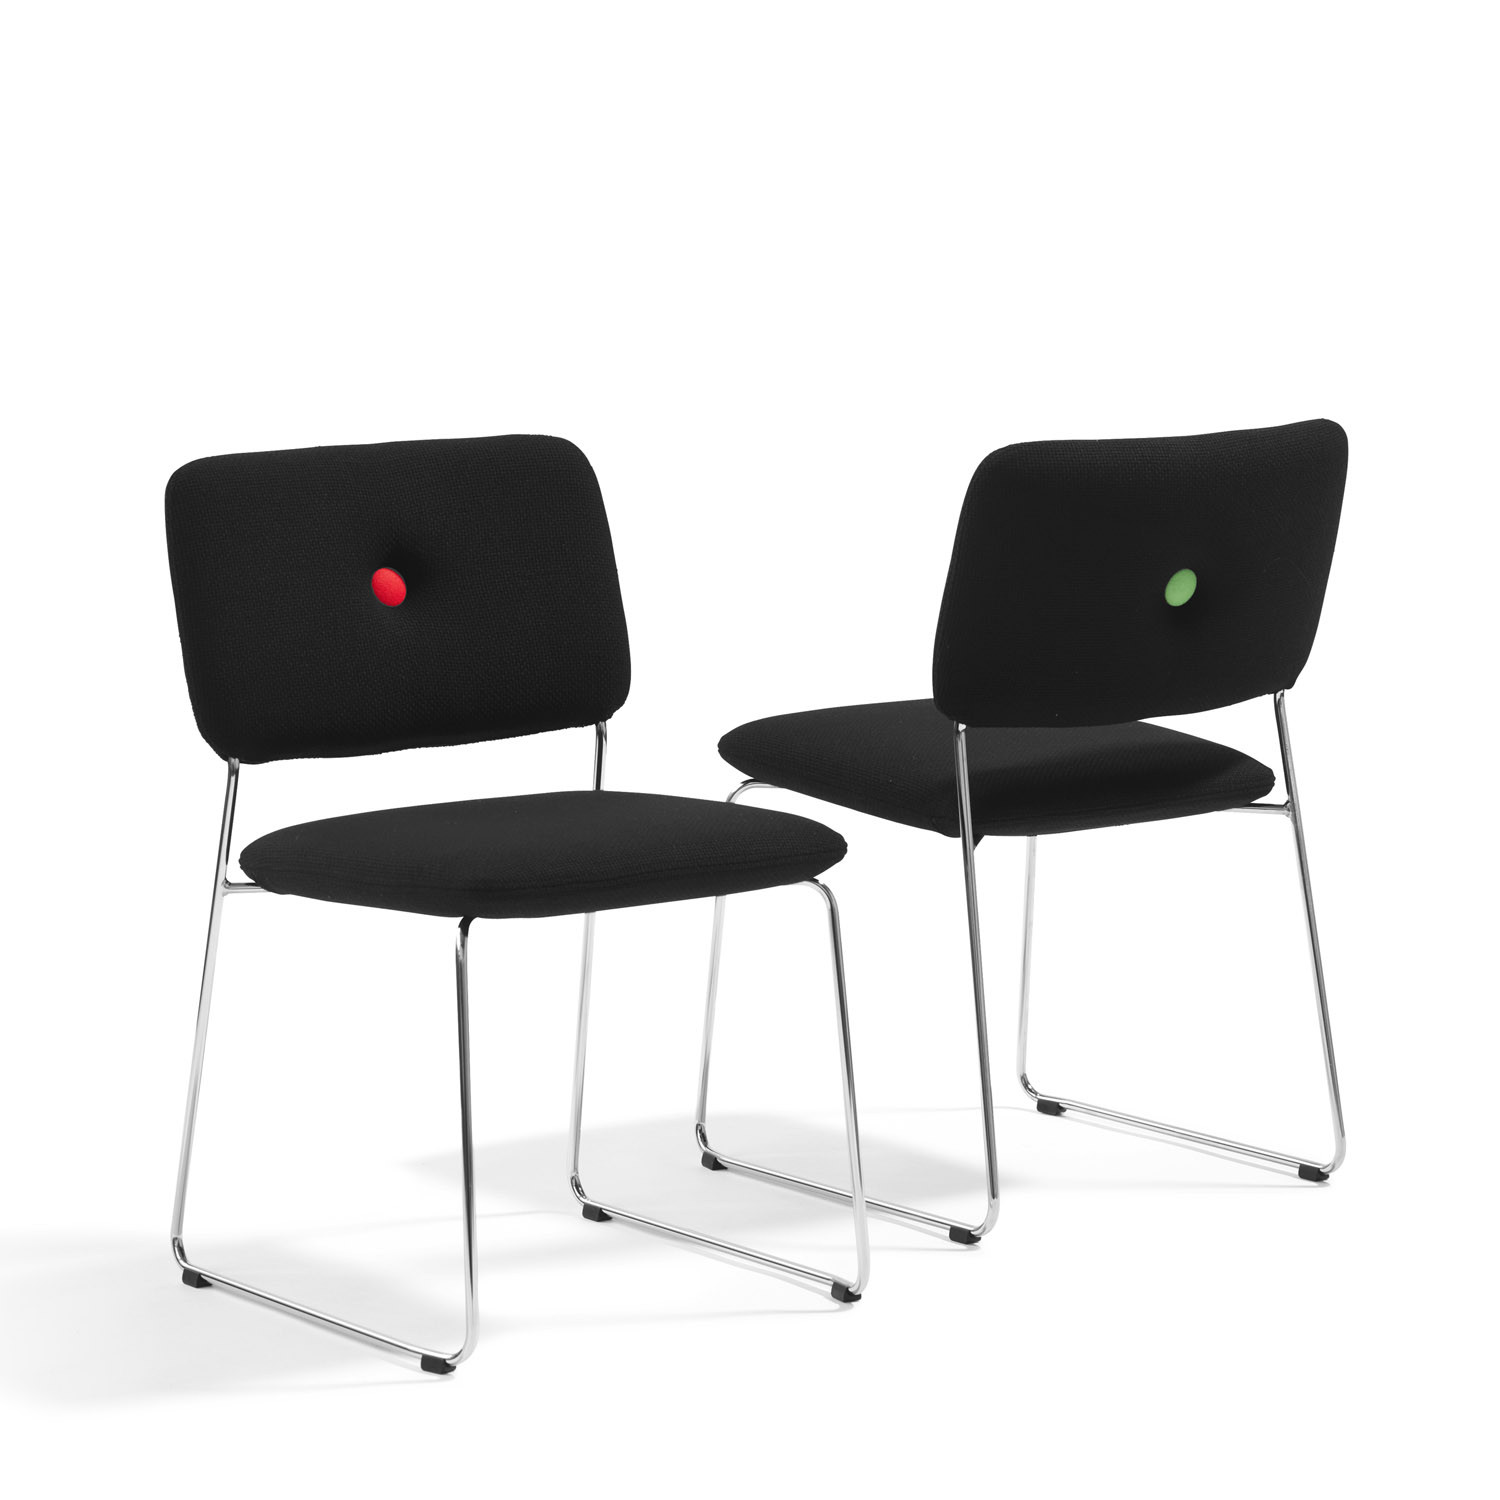 S70 Dundra Restaurant Chairs